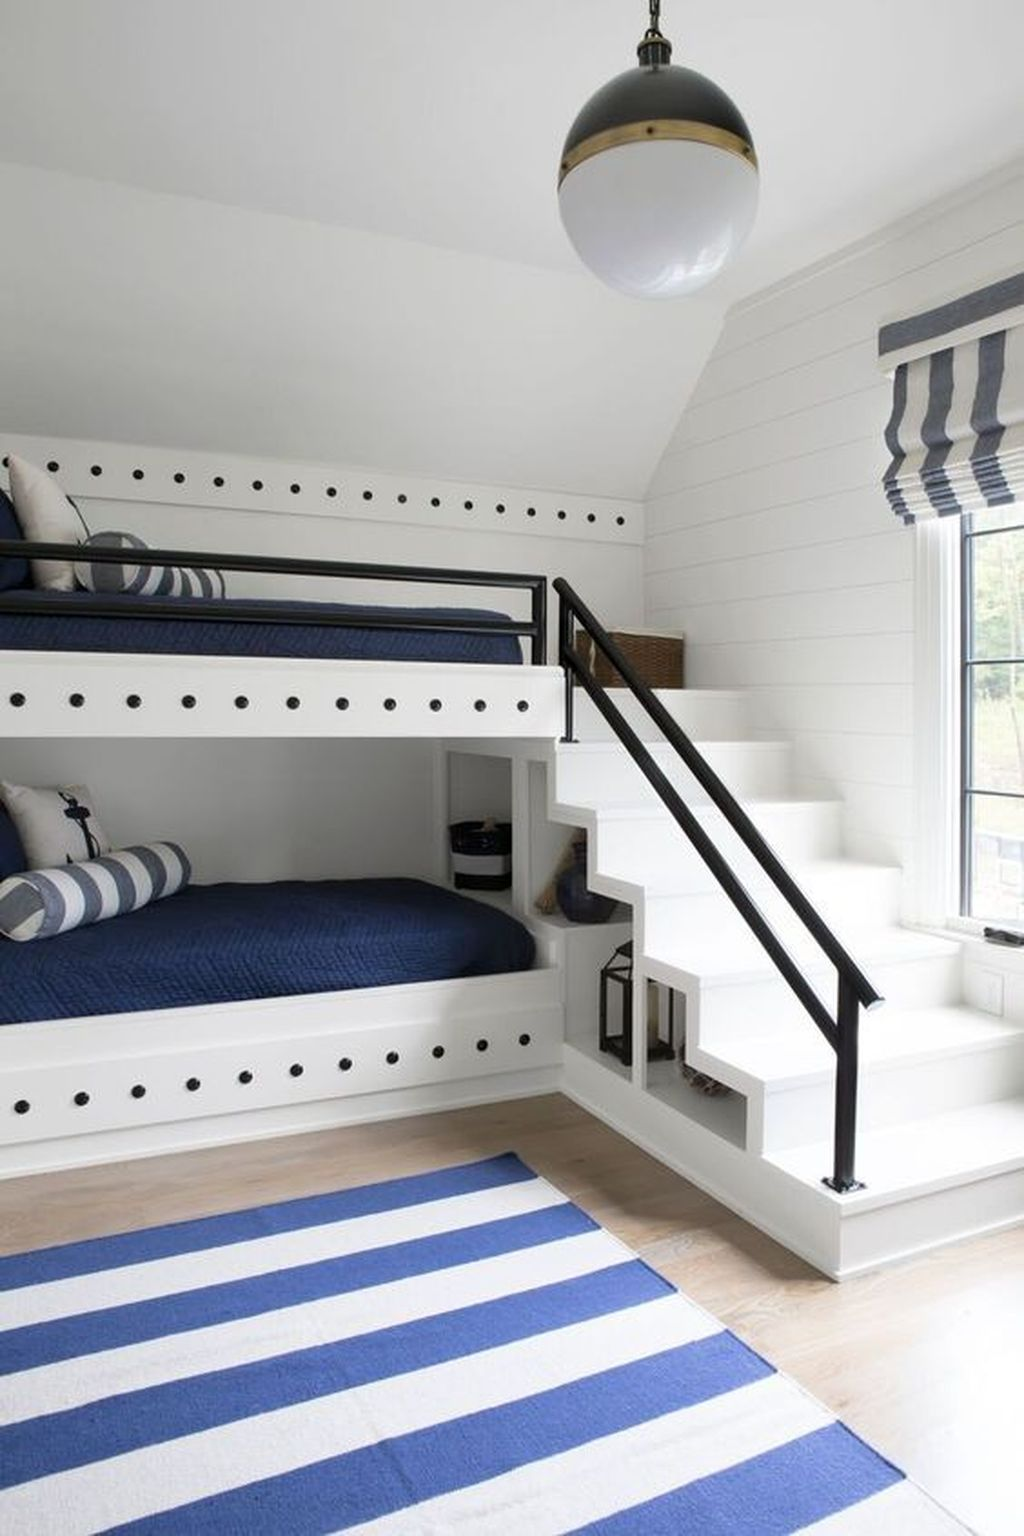 Fascinating Bunk Beds Design Ideas For Small Room 21